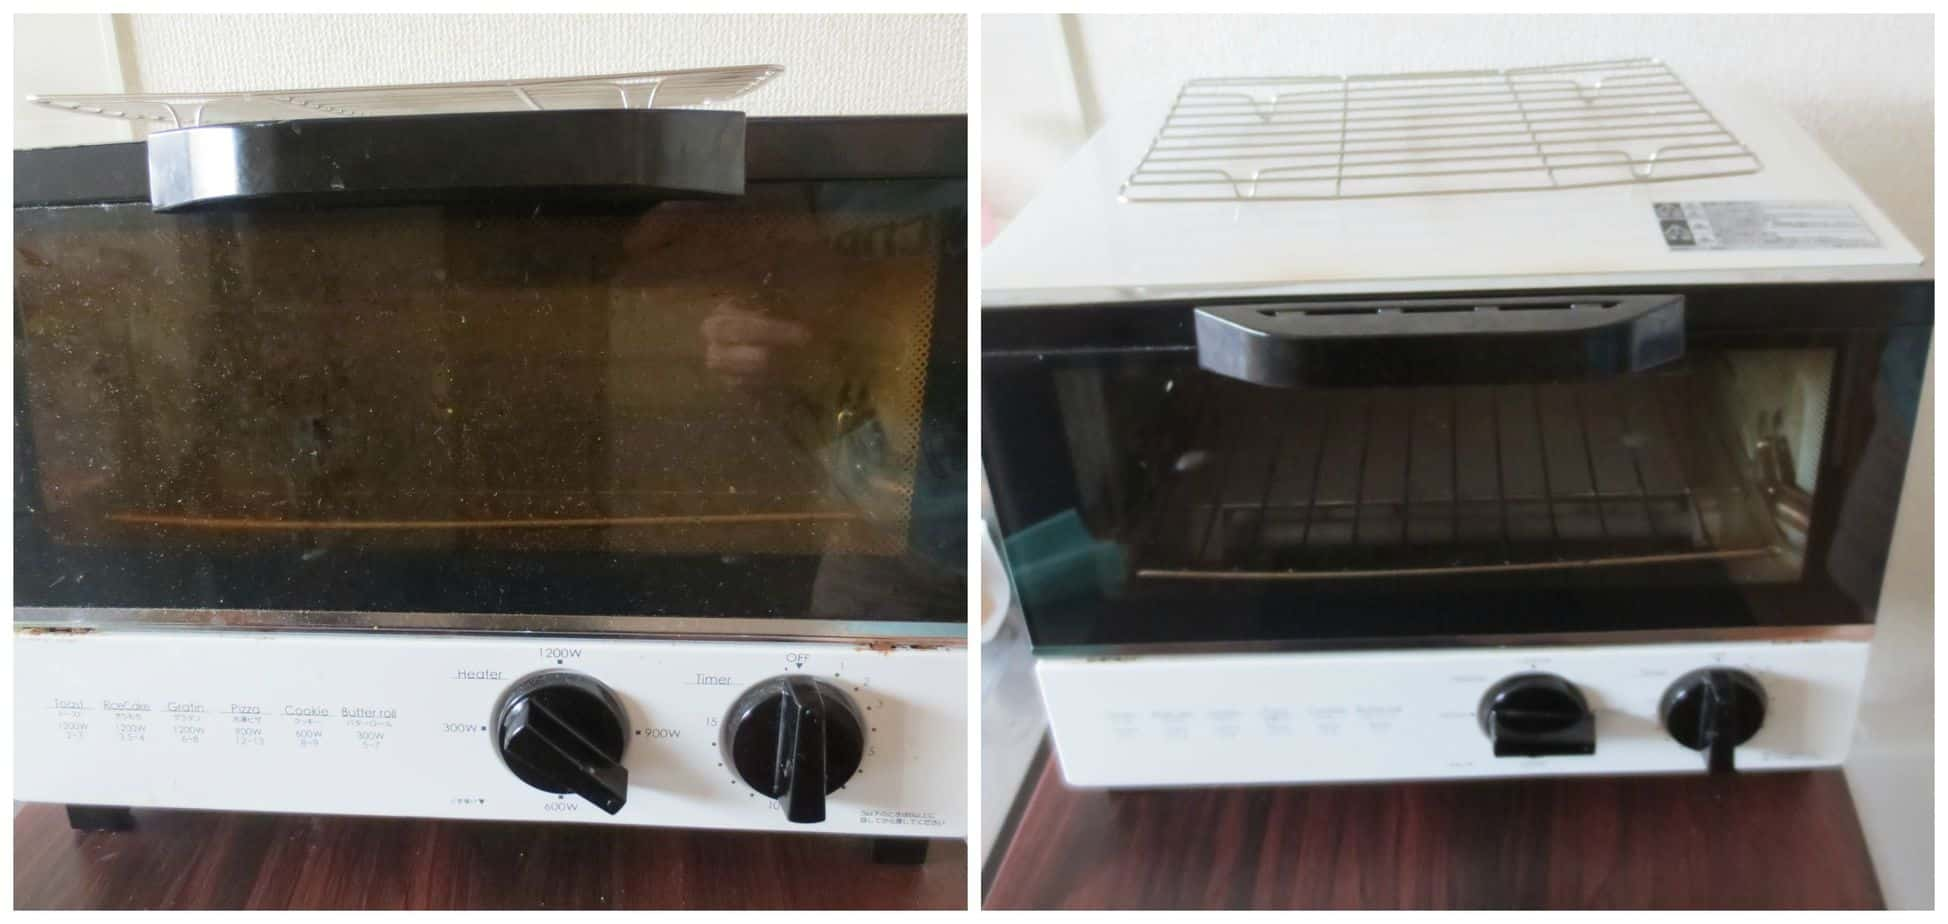 Cleaning the Toaster Oven - Before and After